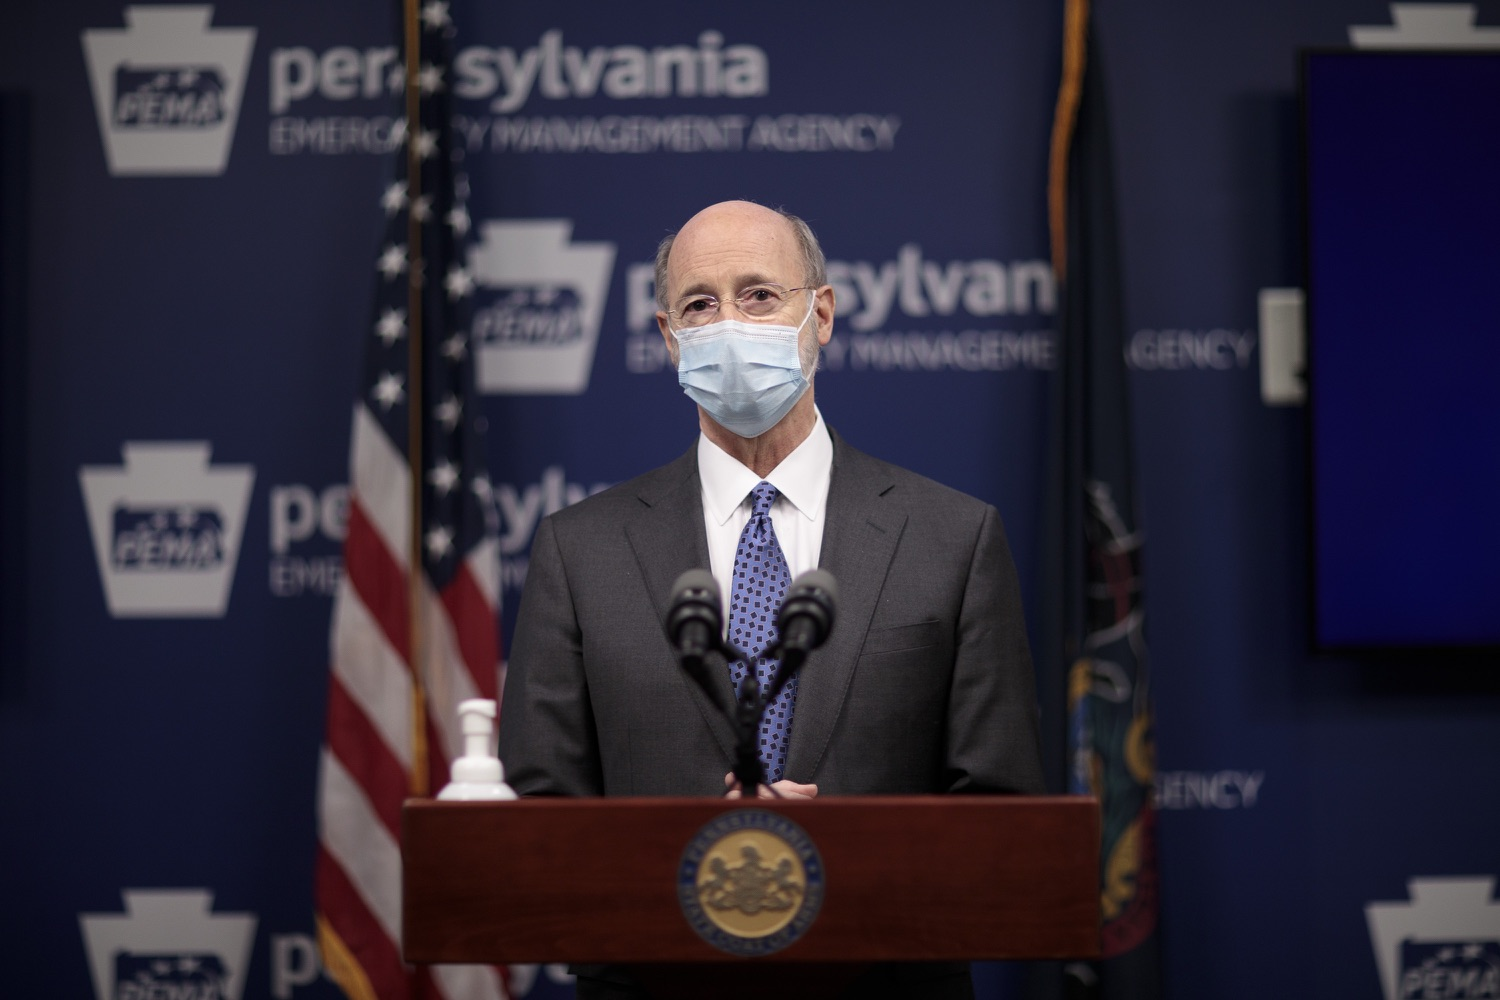 """<a href=""""https://filesource.wostreaming.net/commonwealthofpa/photo/18472_gov_vaccine_dz_17.jpg"""" target=""""_blank"""">⇣Download Photo<br></a>Pennsylvania Governor Tom Wolf speaks at the press conference.  The commonwealths COVID-19 vaccination distribution plan was designed to be fluid and flexible to meet guidance and recommendations from the federal government. Today, Governor Tom Wolf and Secretary of Health Dr. Rachel Levine announced the fourth version of the plan, detailing the updates and how the state is working to ensure safe, swift implementation. Harrisburg, PA  January 8, 2021"""